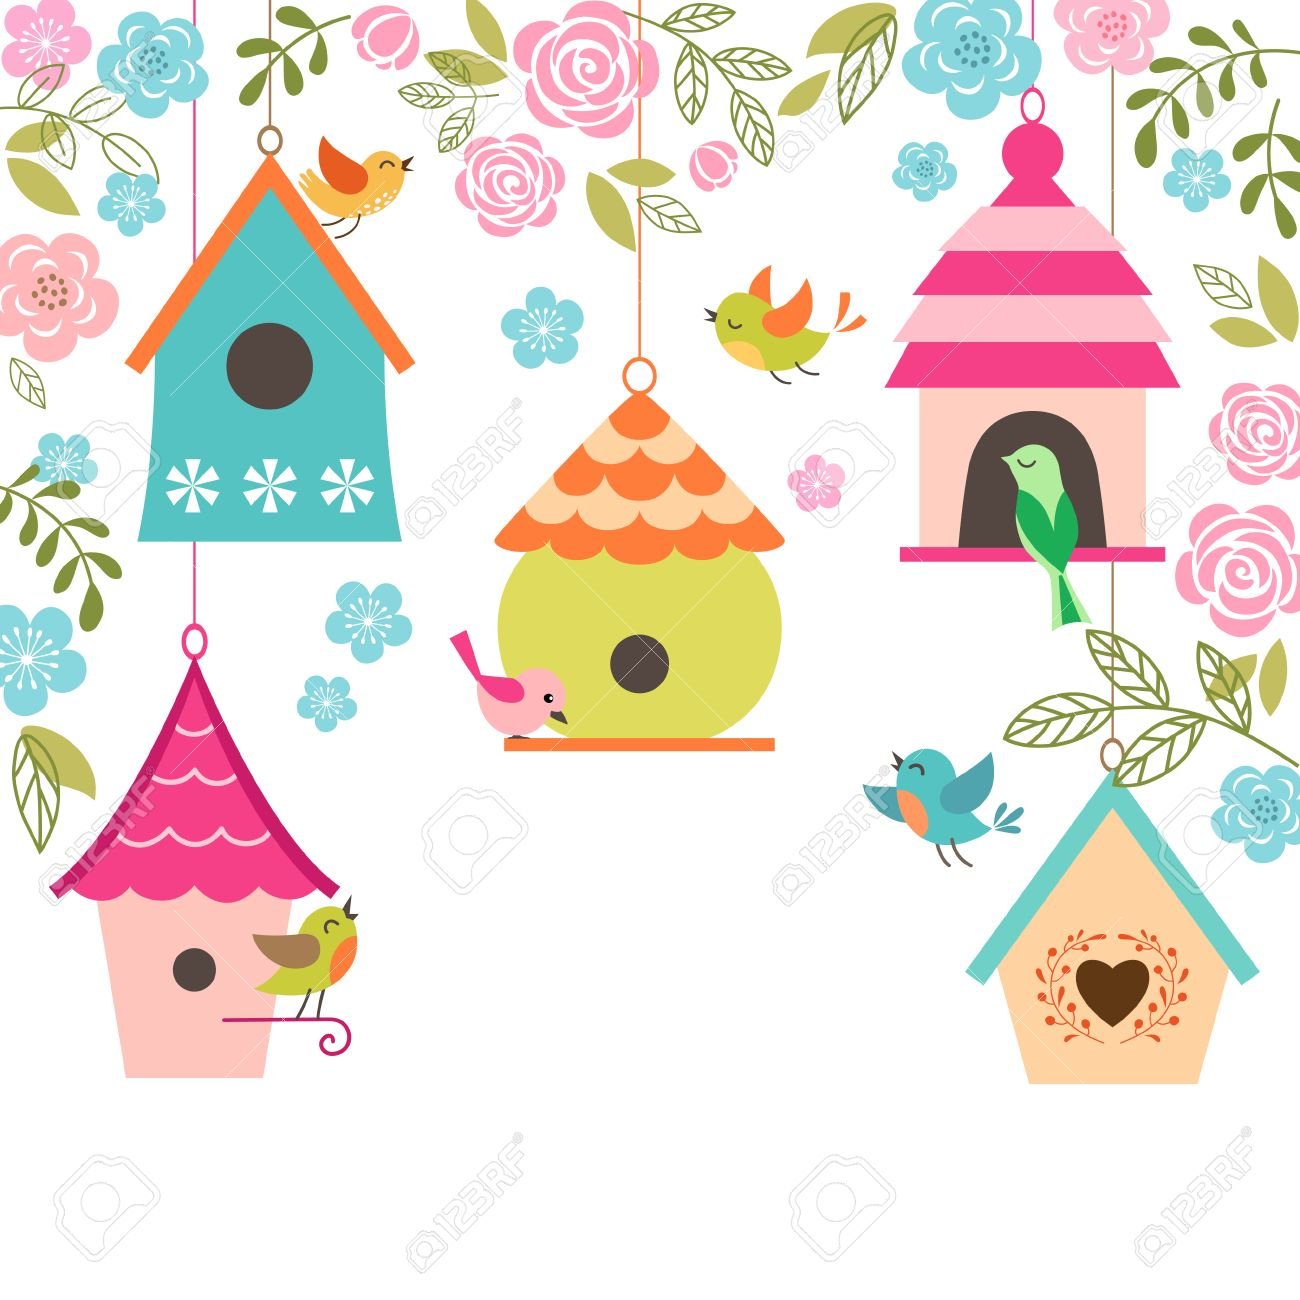 Spring illustration with birds, bird houses, flowers and place for your text. - 36207429